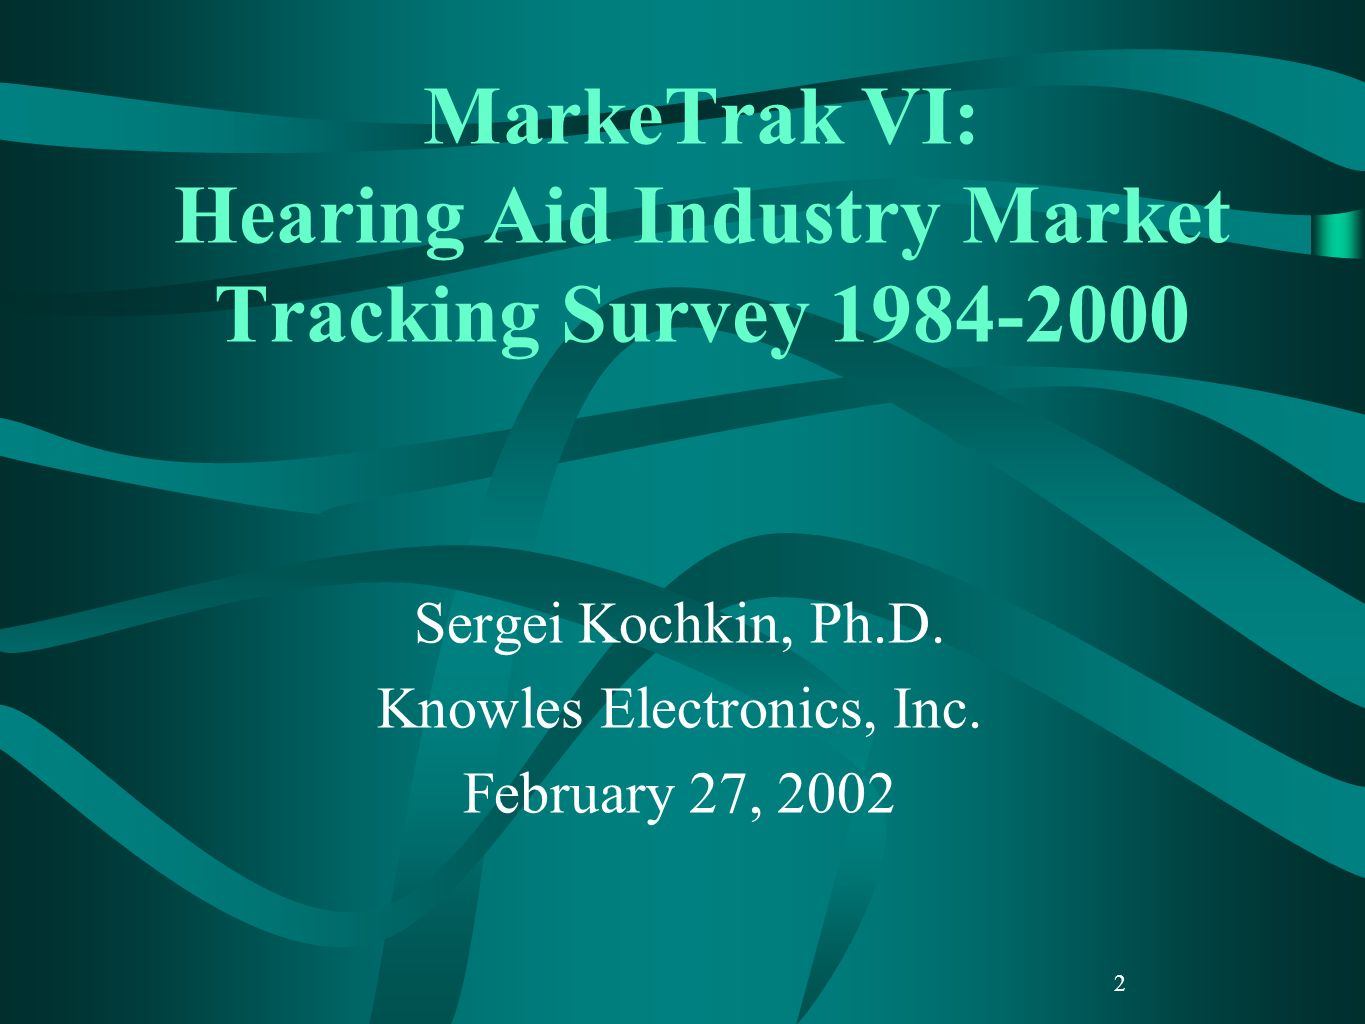 MarkeTrak VI: Hearing Aid Industry Market Tracking Survey